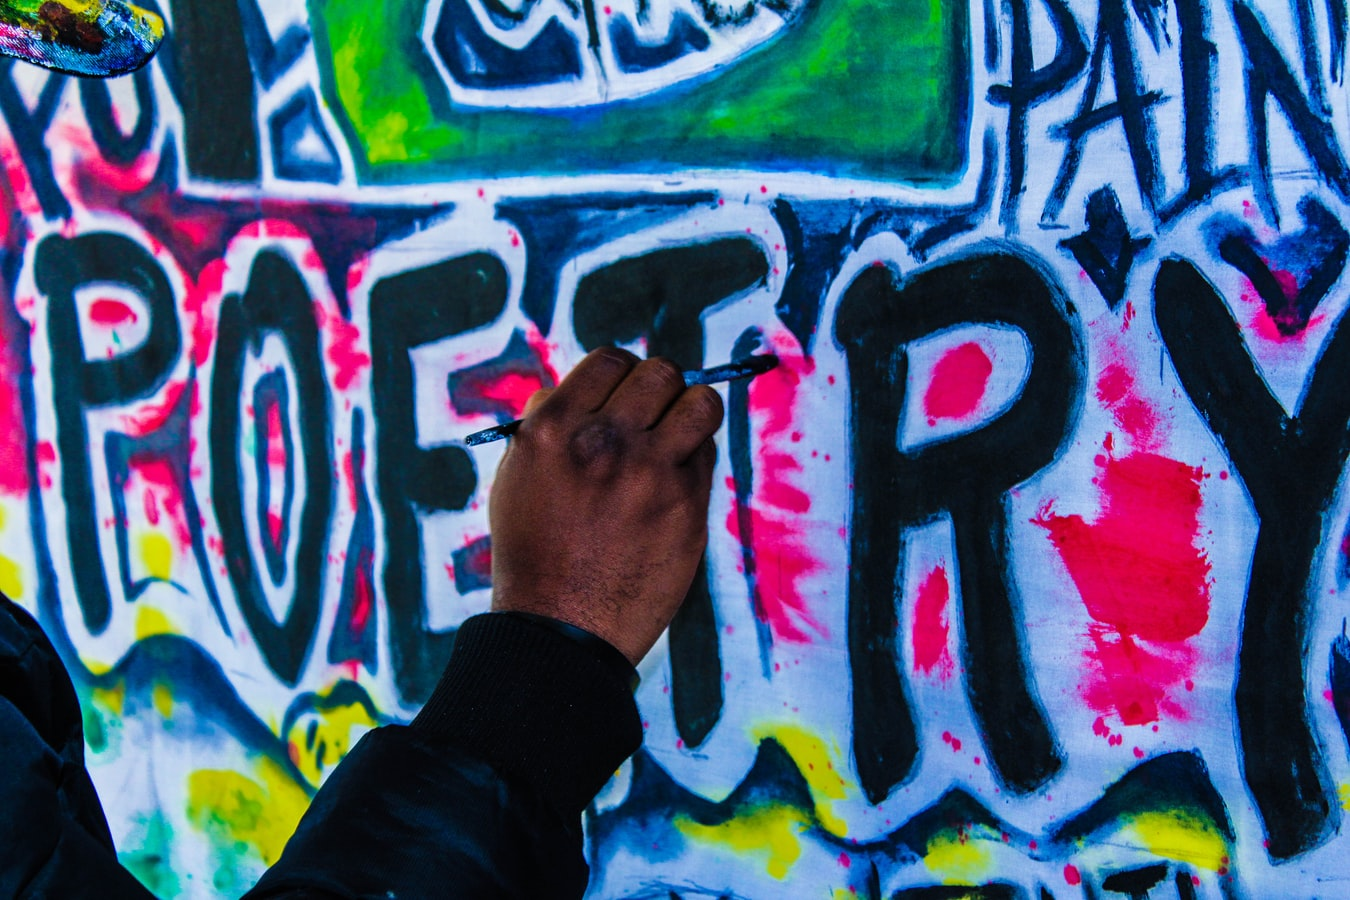 Person painting the word